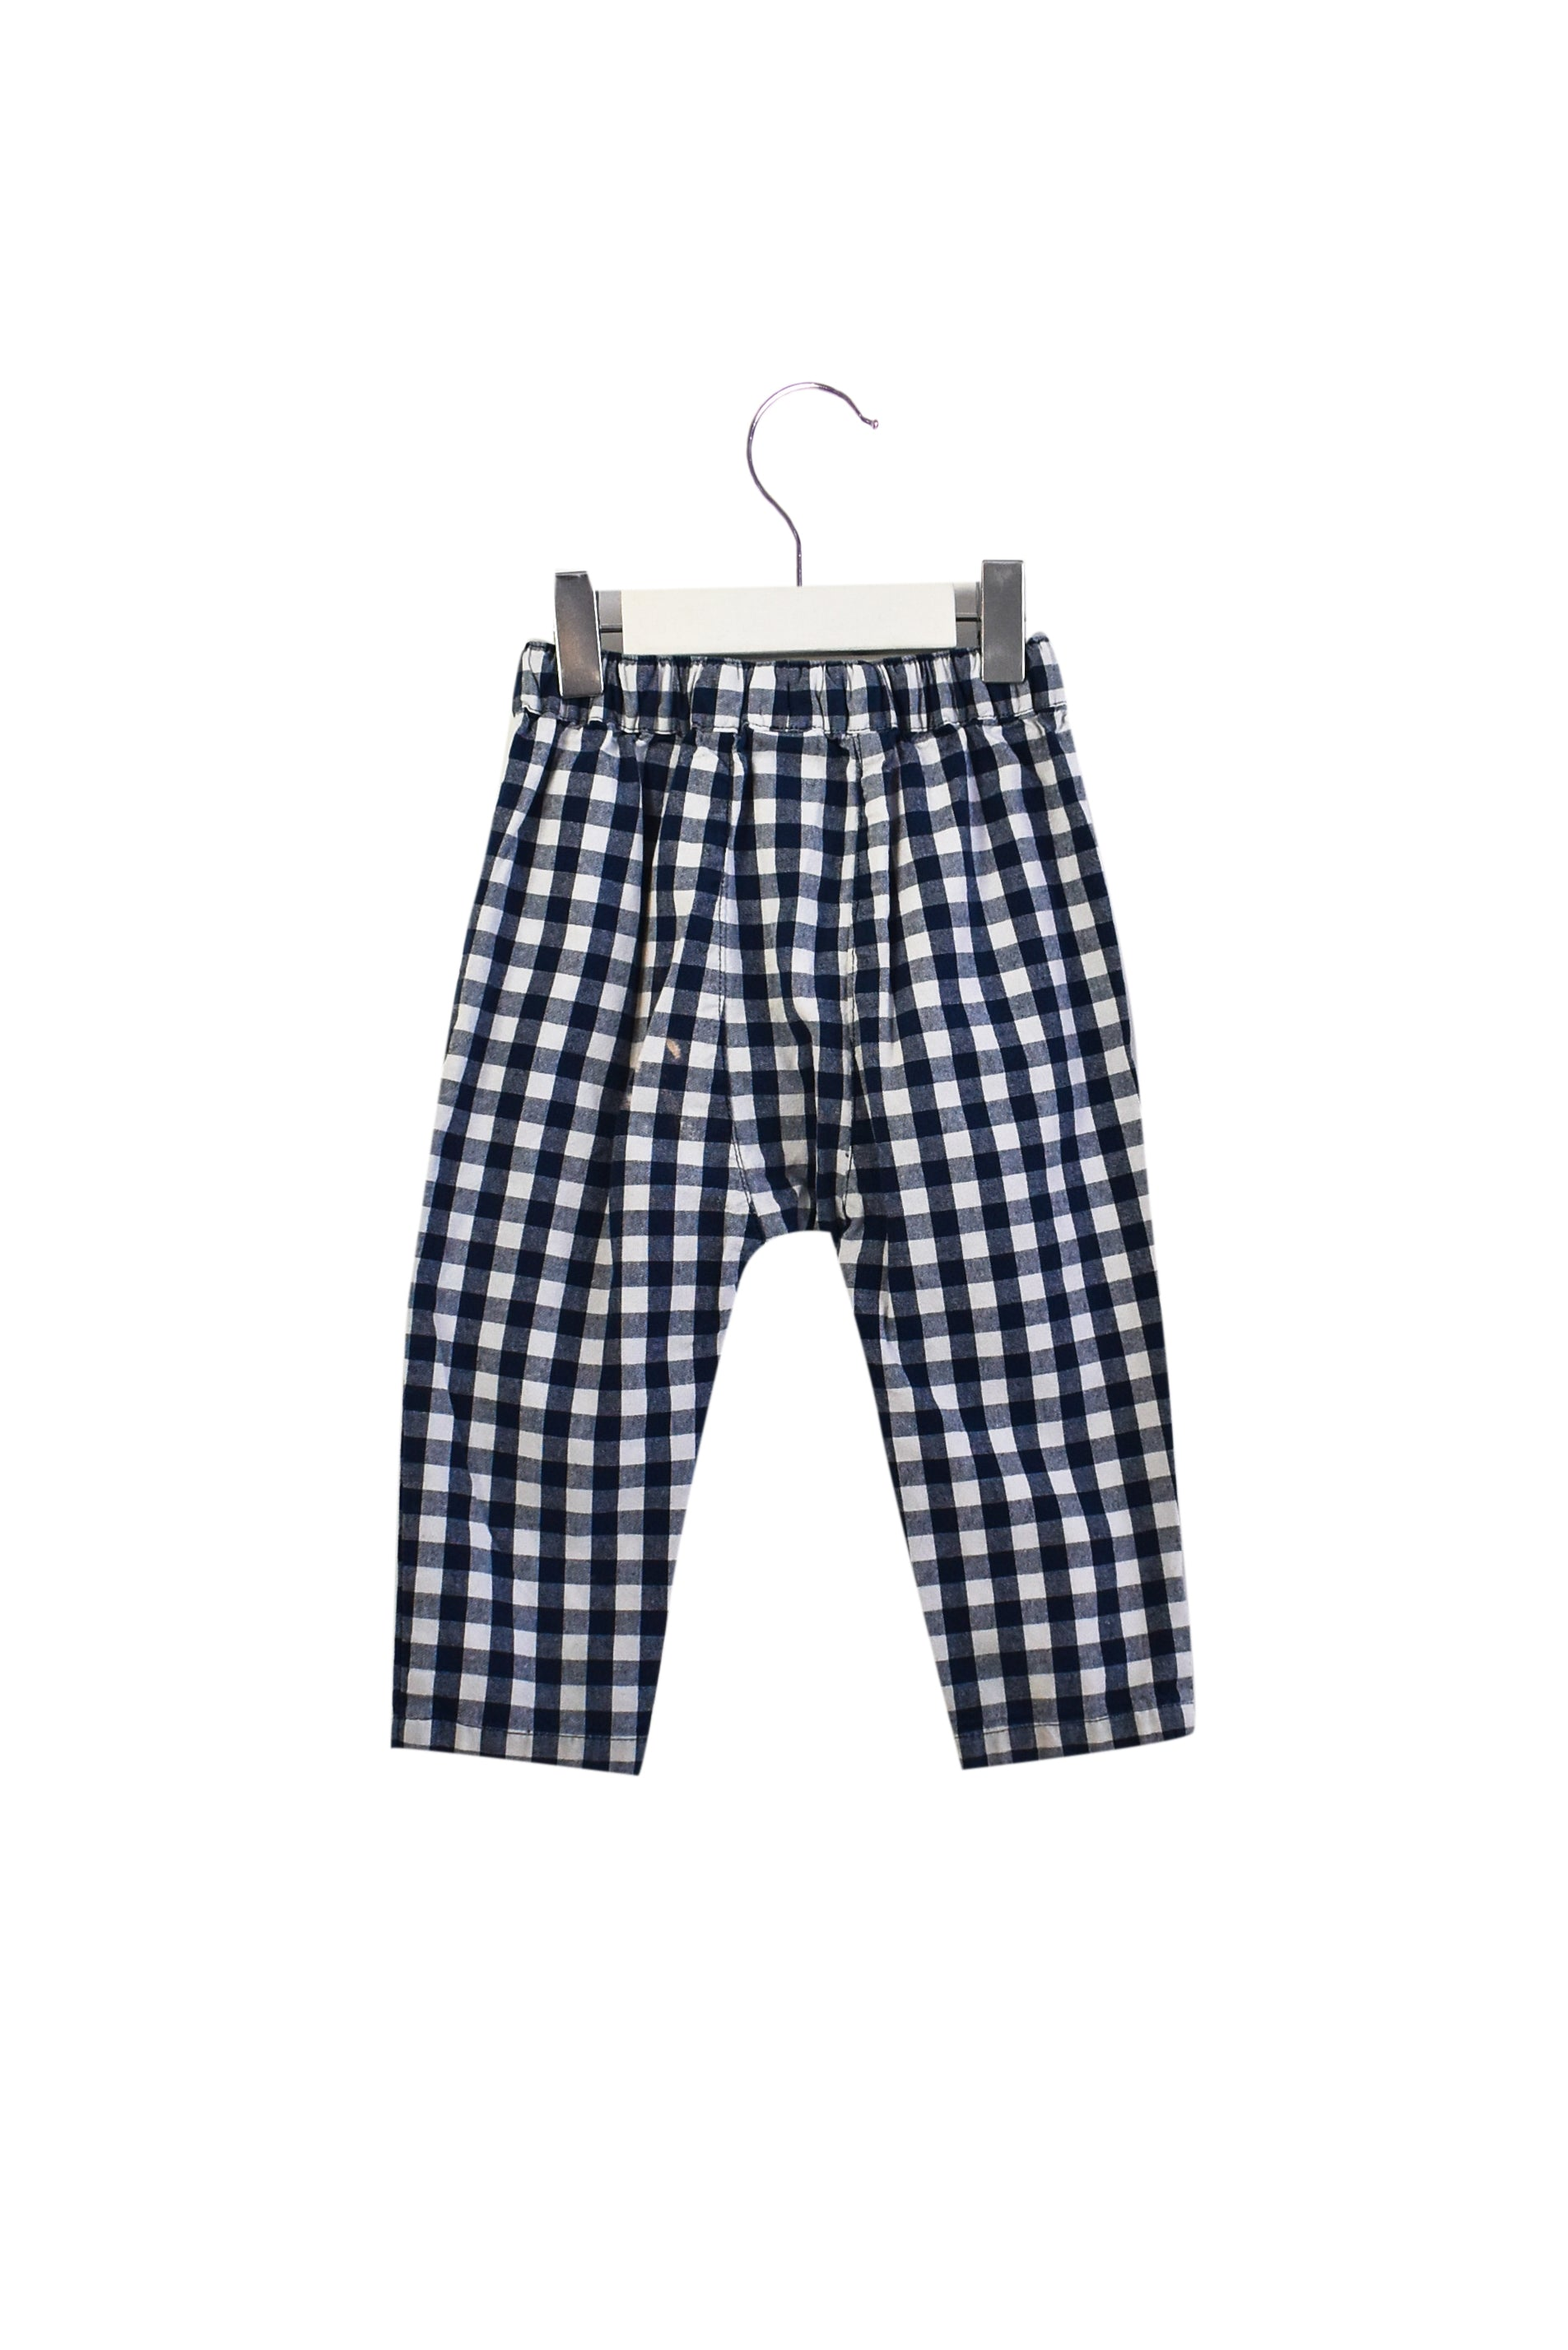 10013331 Seed Baby ~ Pants 12-18M at Retykle